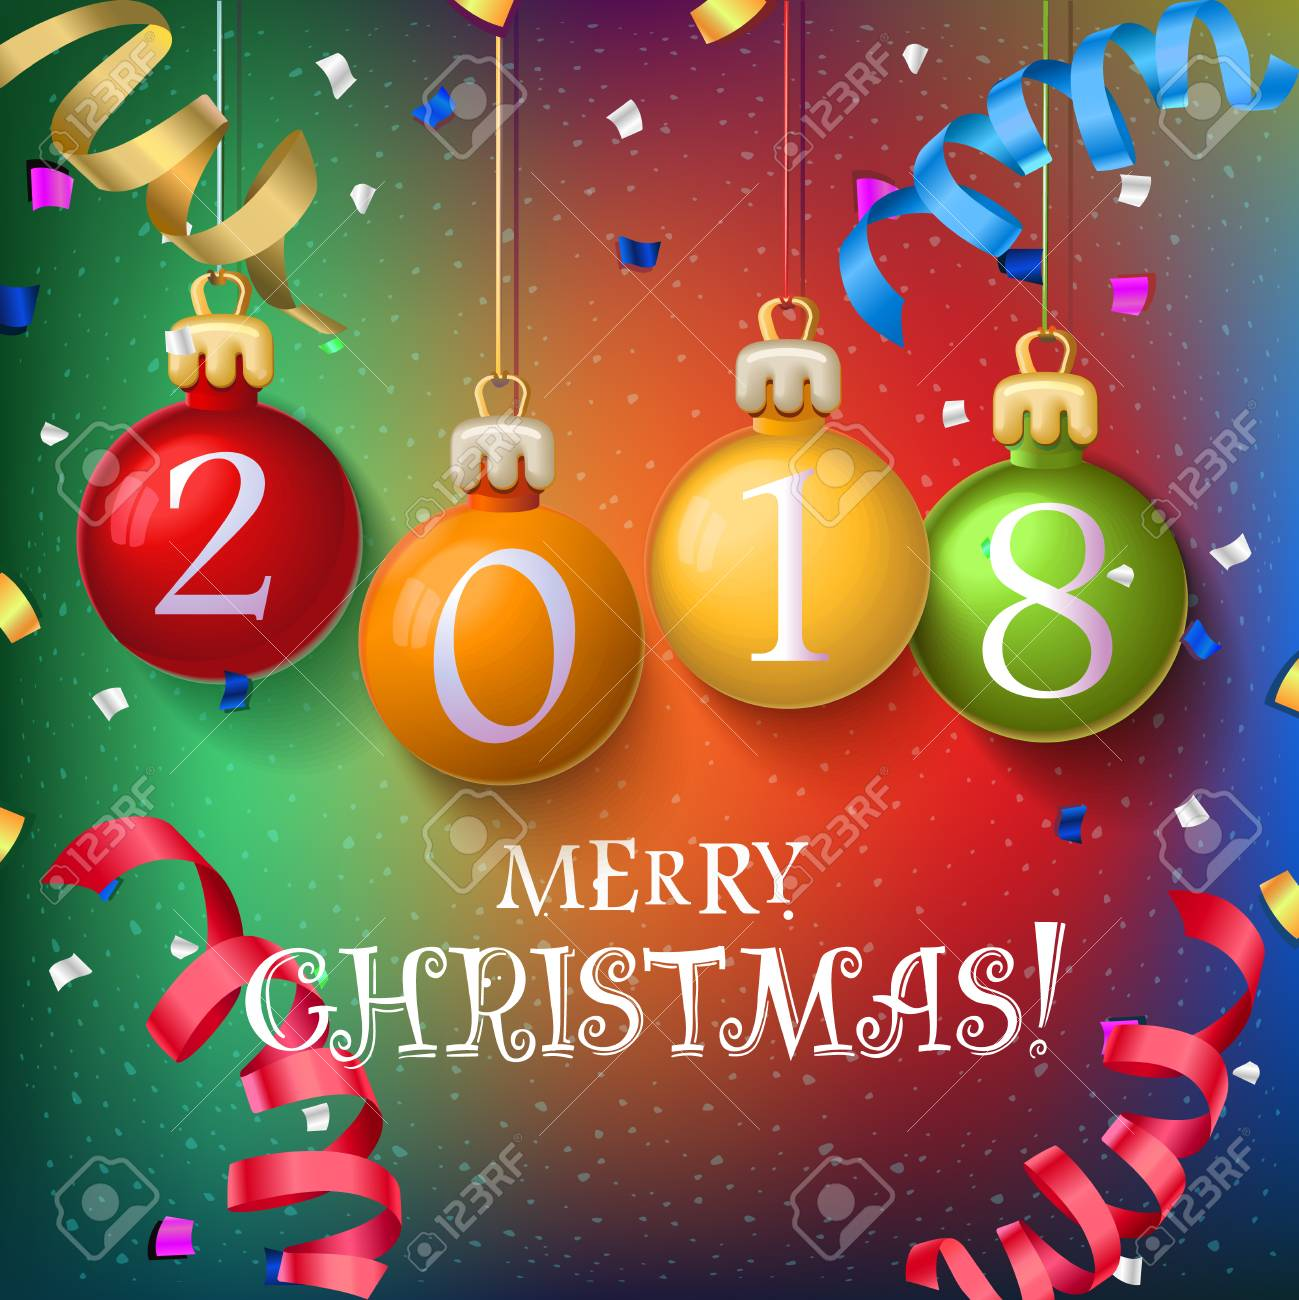 Merry Christmas Poster 2018.Merry Christmas 2018 Decoration Poster Card New Year Background